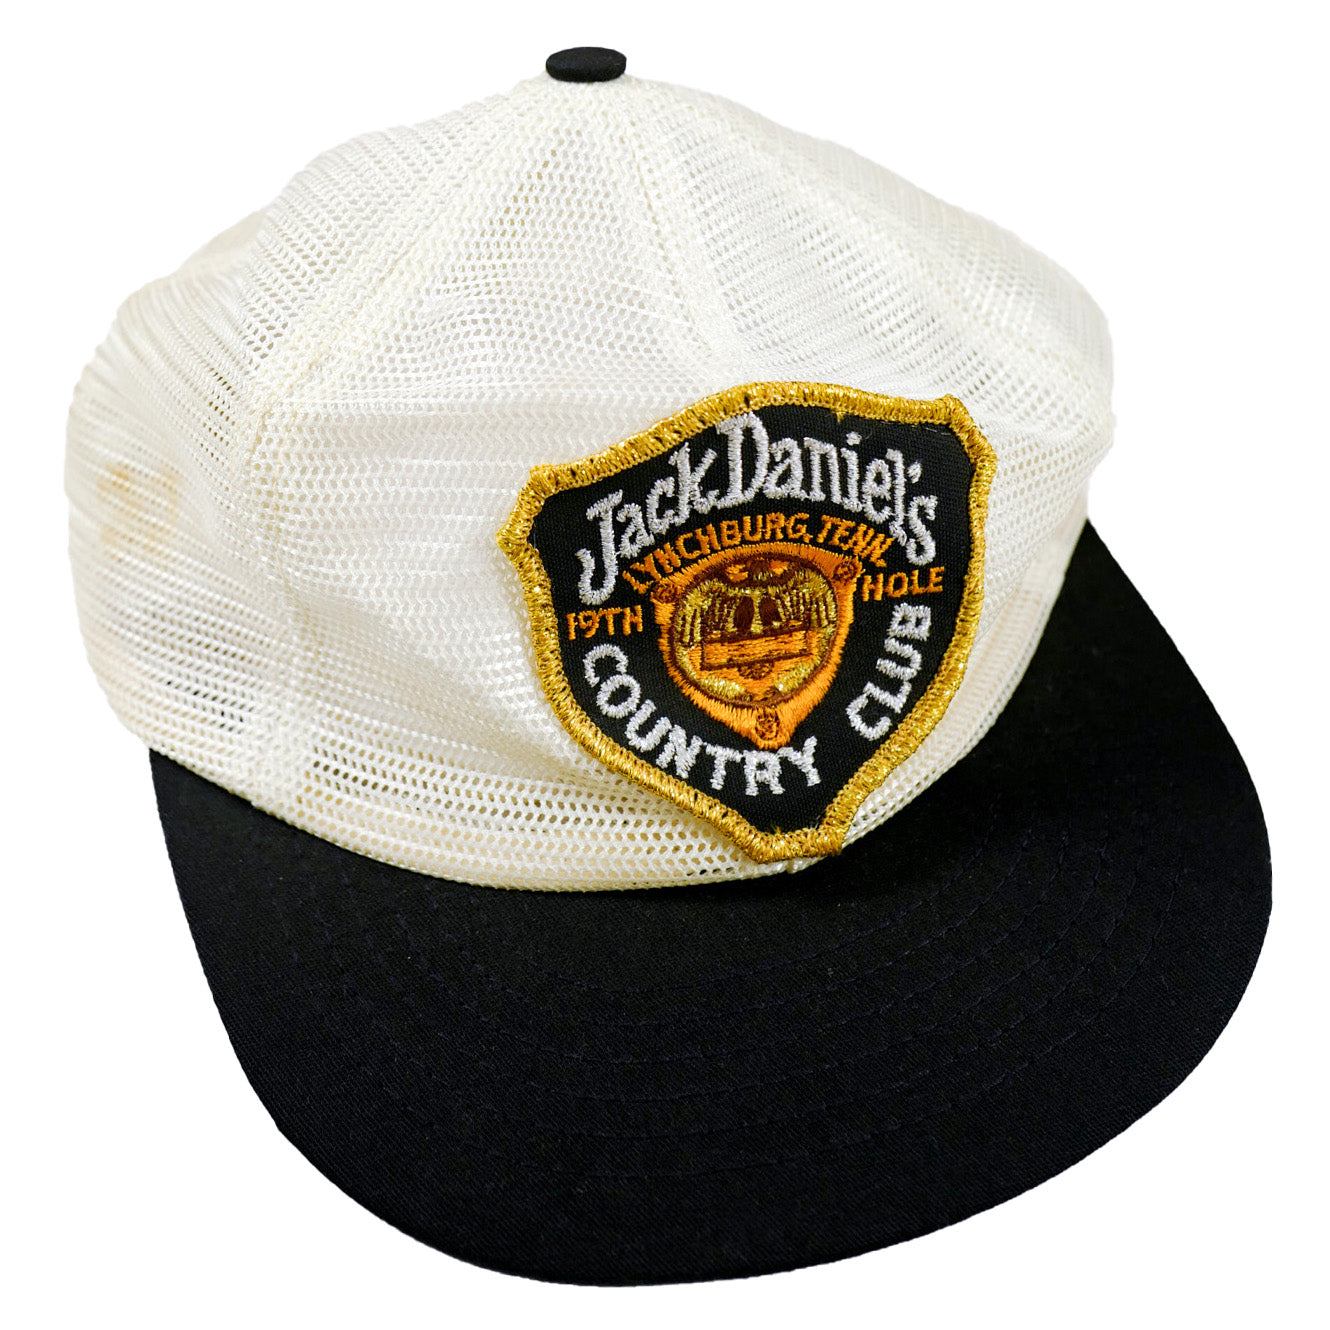 Vintage Jack Daniel's Country Club Hat